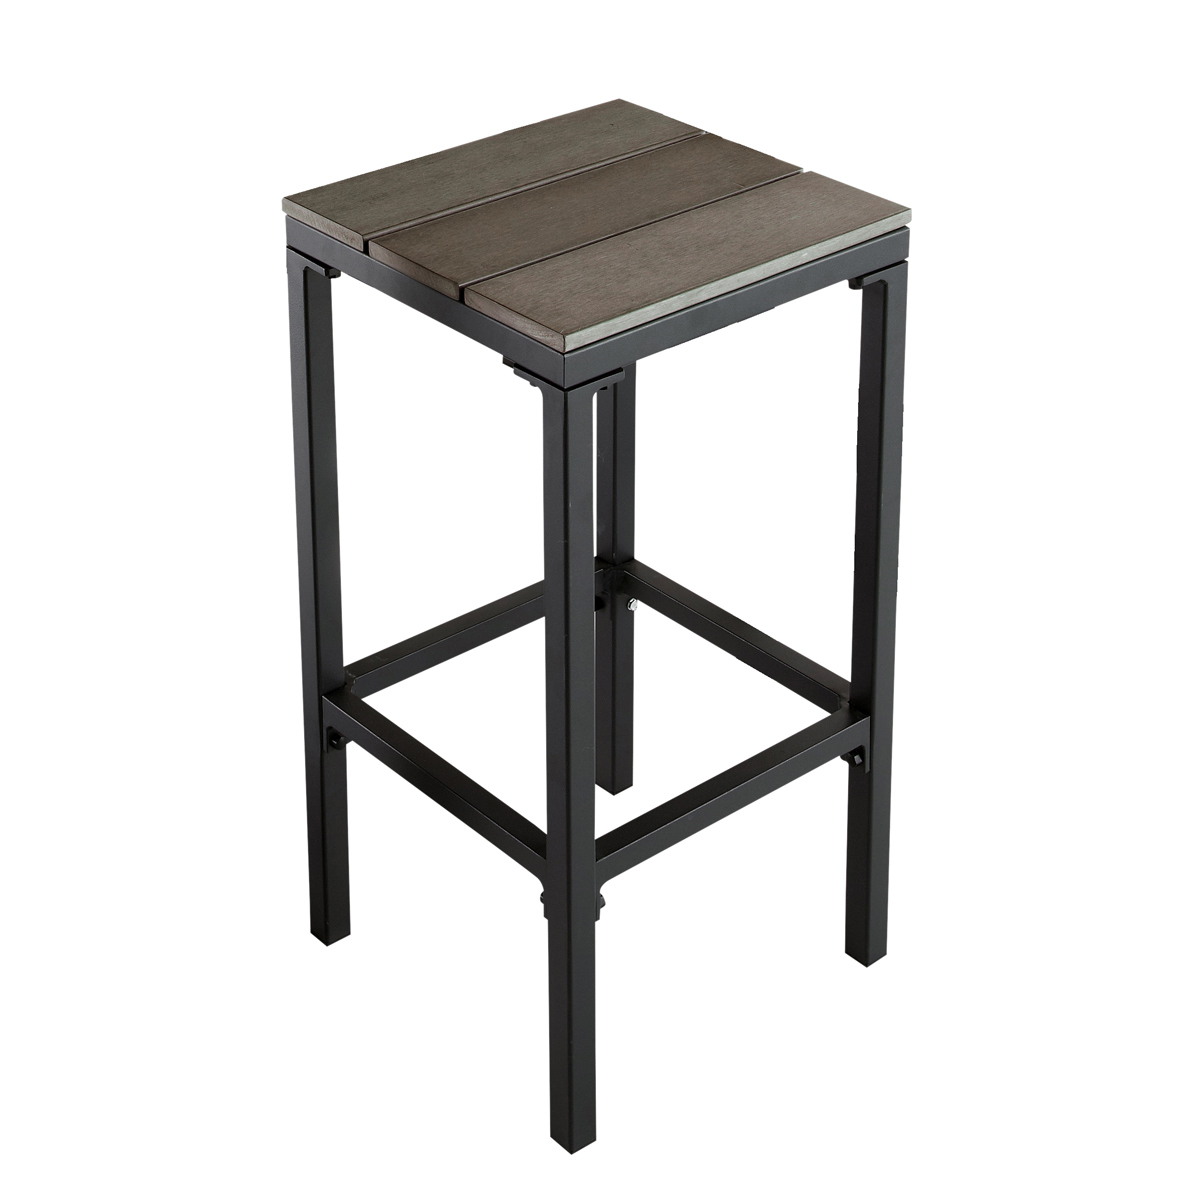 tabouret de bar jardin pas cher mobilier design d coration d 39 int rieur. Black Bedroom Furniture Sets. Home Design Ideas